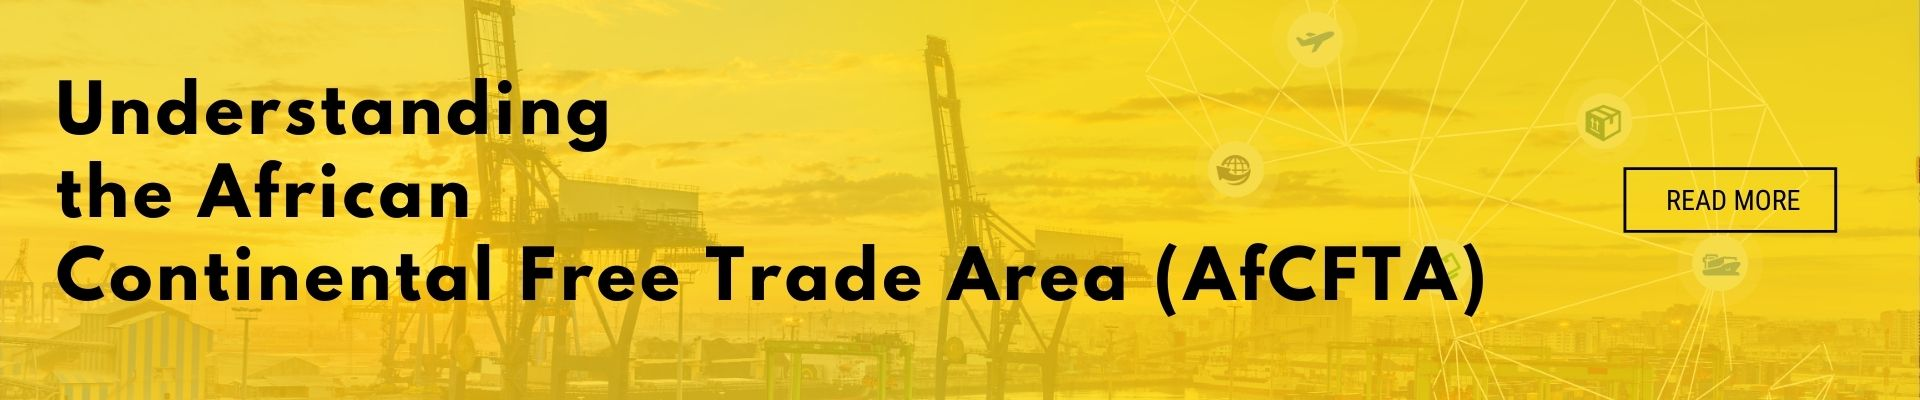 What is AfCFTA